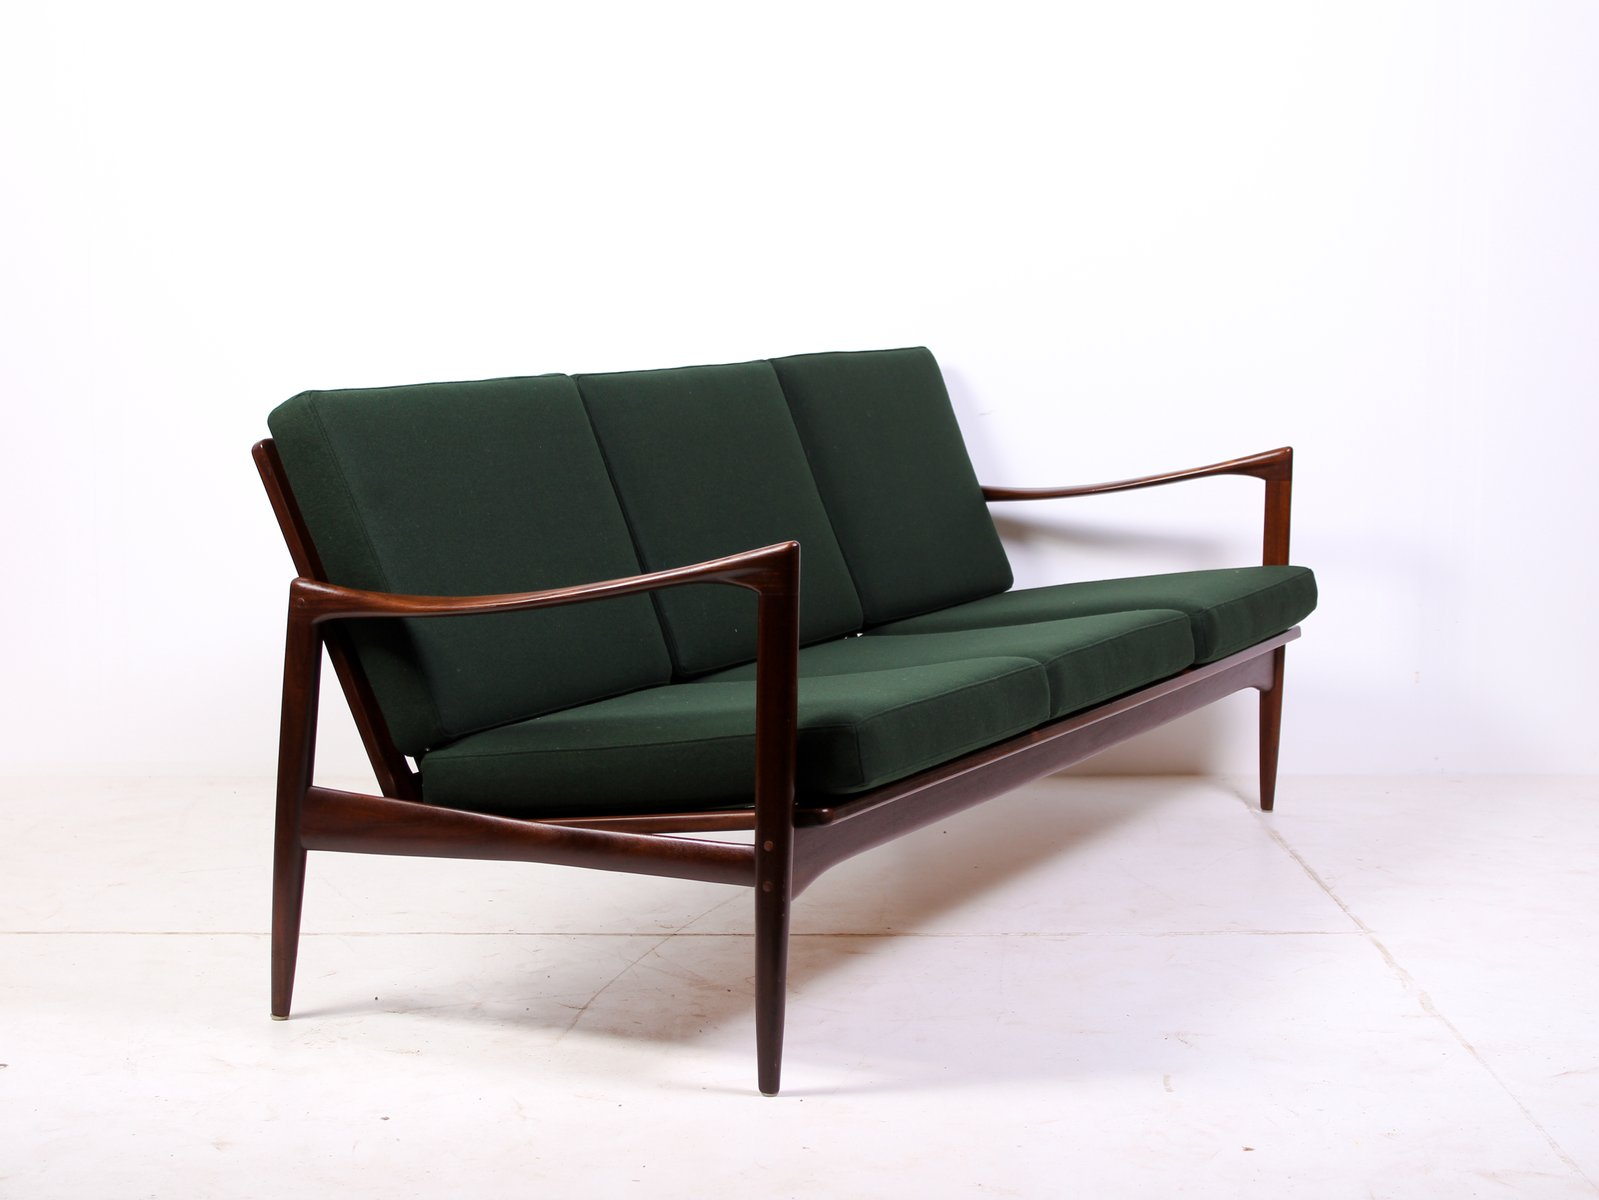 Mid Century Kandidaten Sofa Lounge Chair By Ib Kofod Ln For Ope